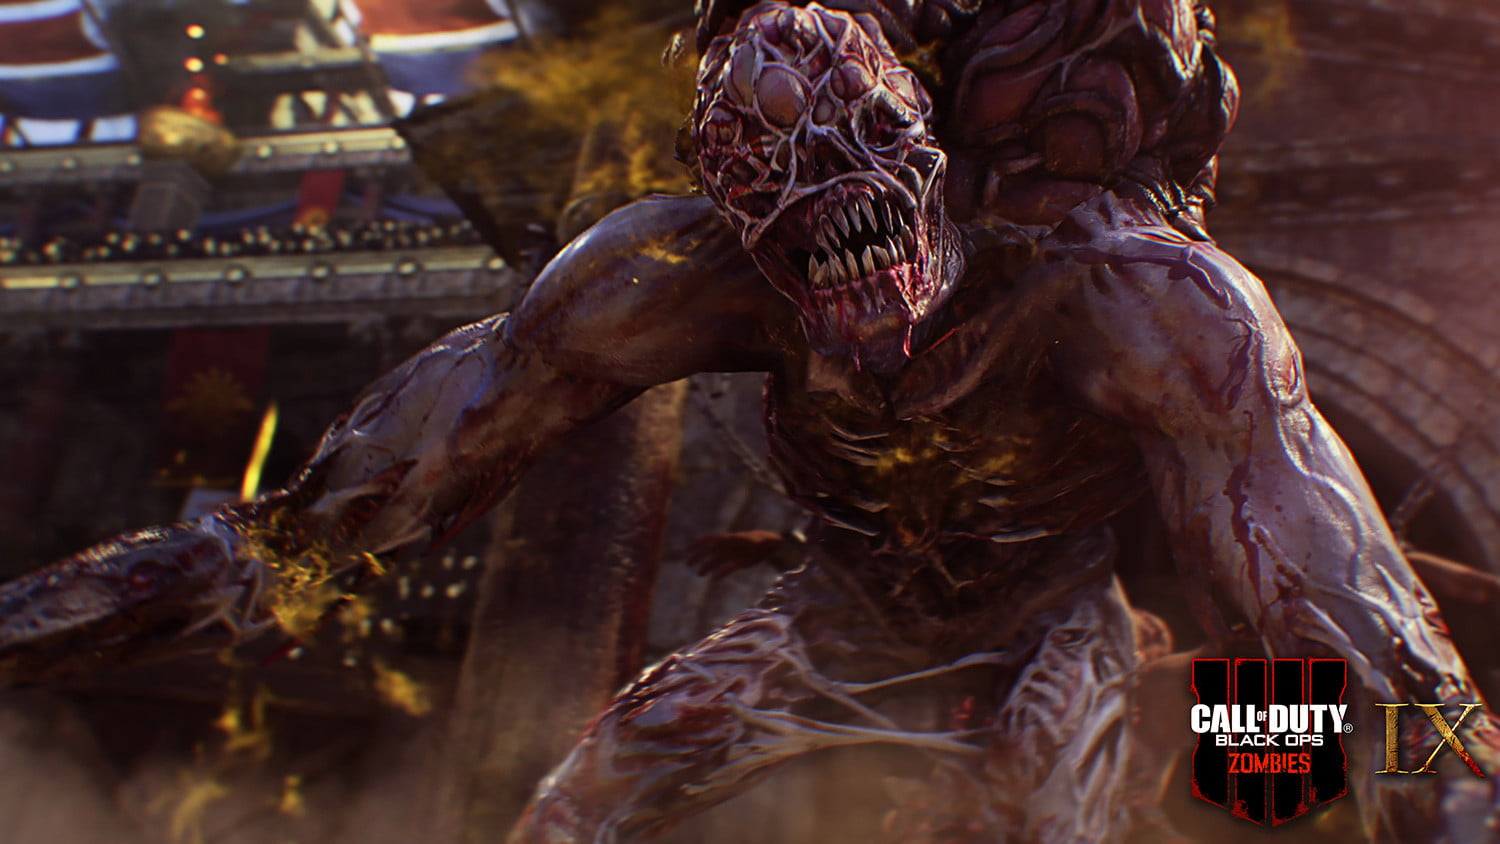 Call of Duty: Black Ops 4 Zombies Campaign Will Still Support Local